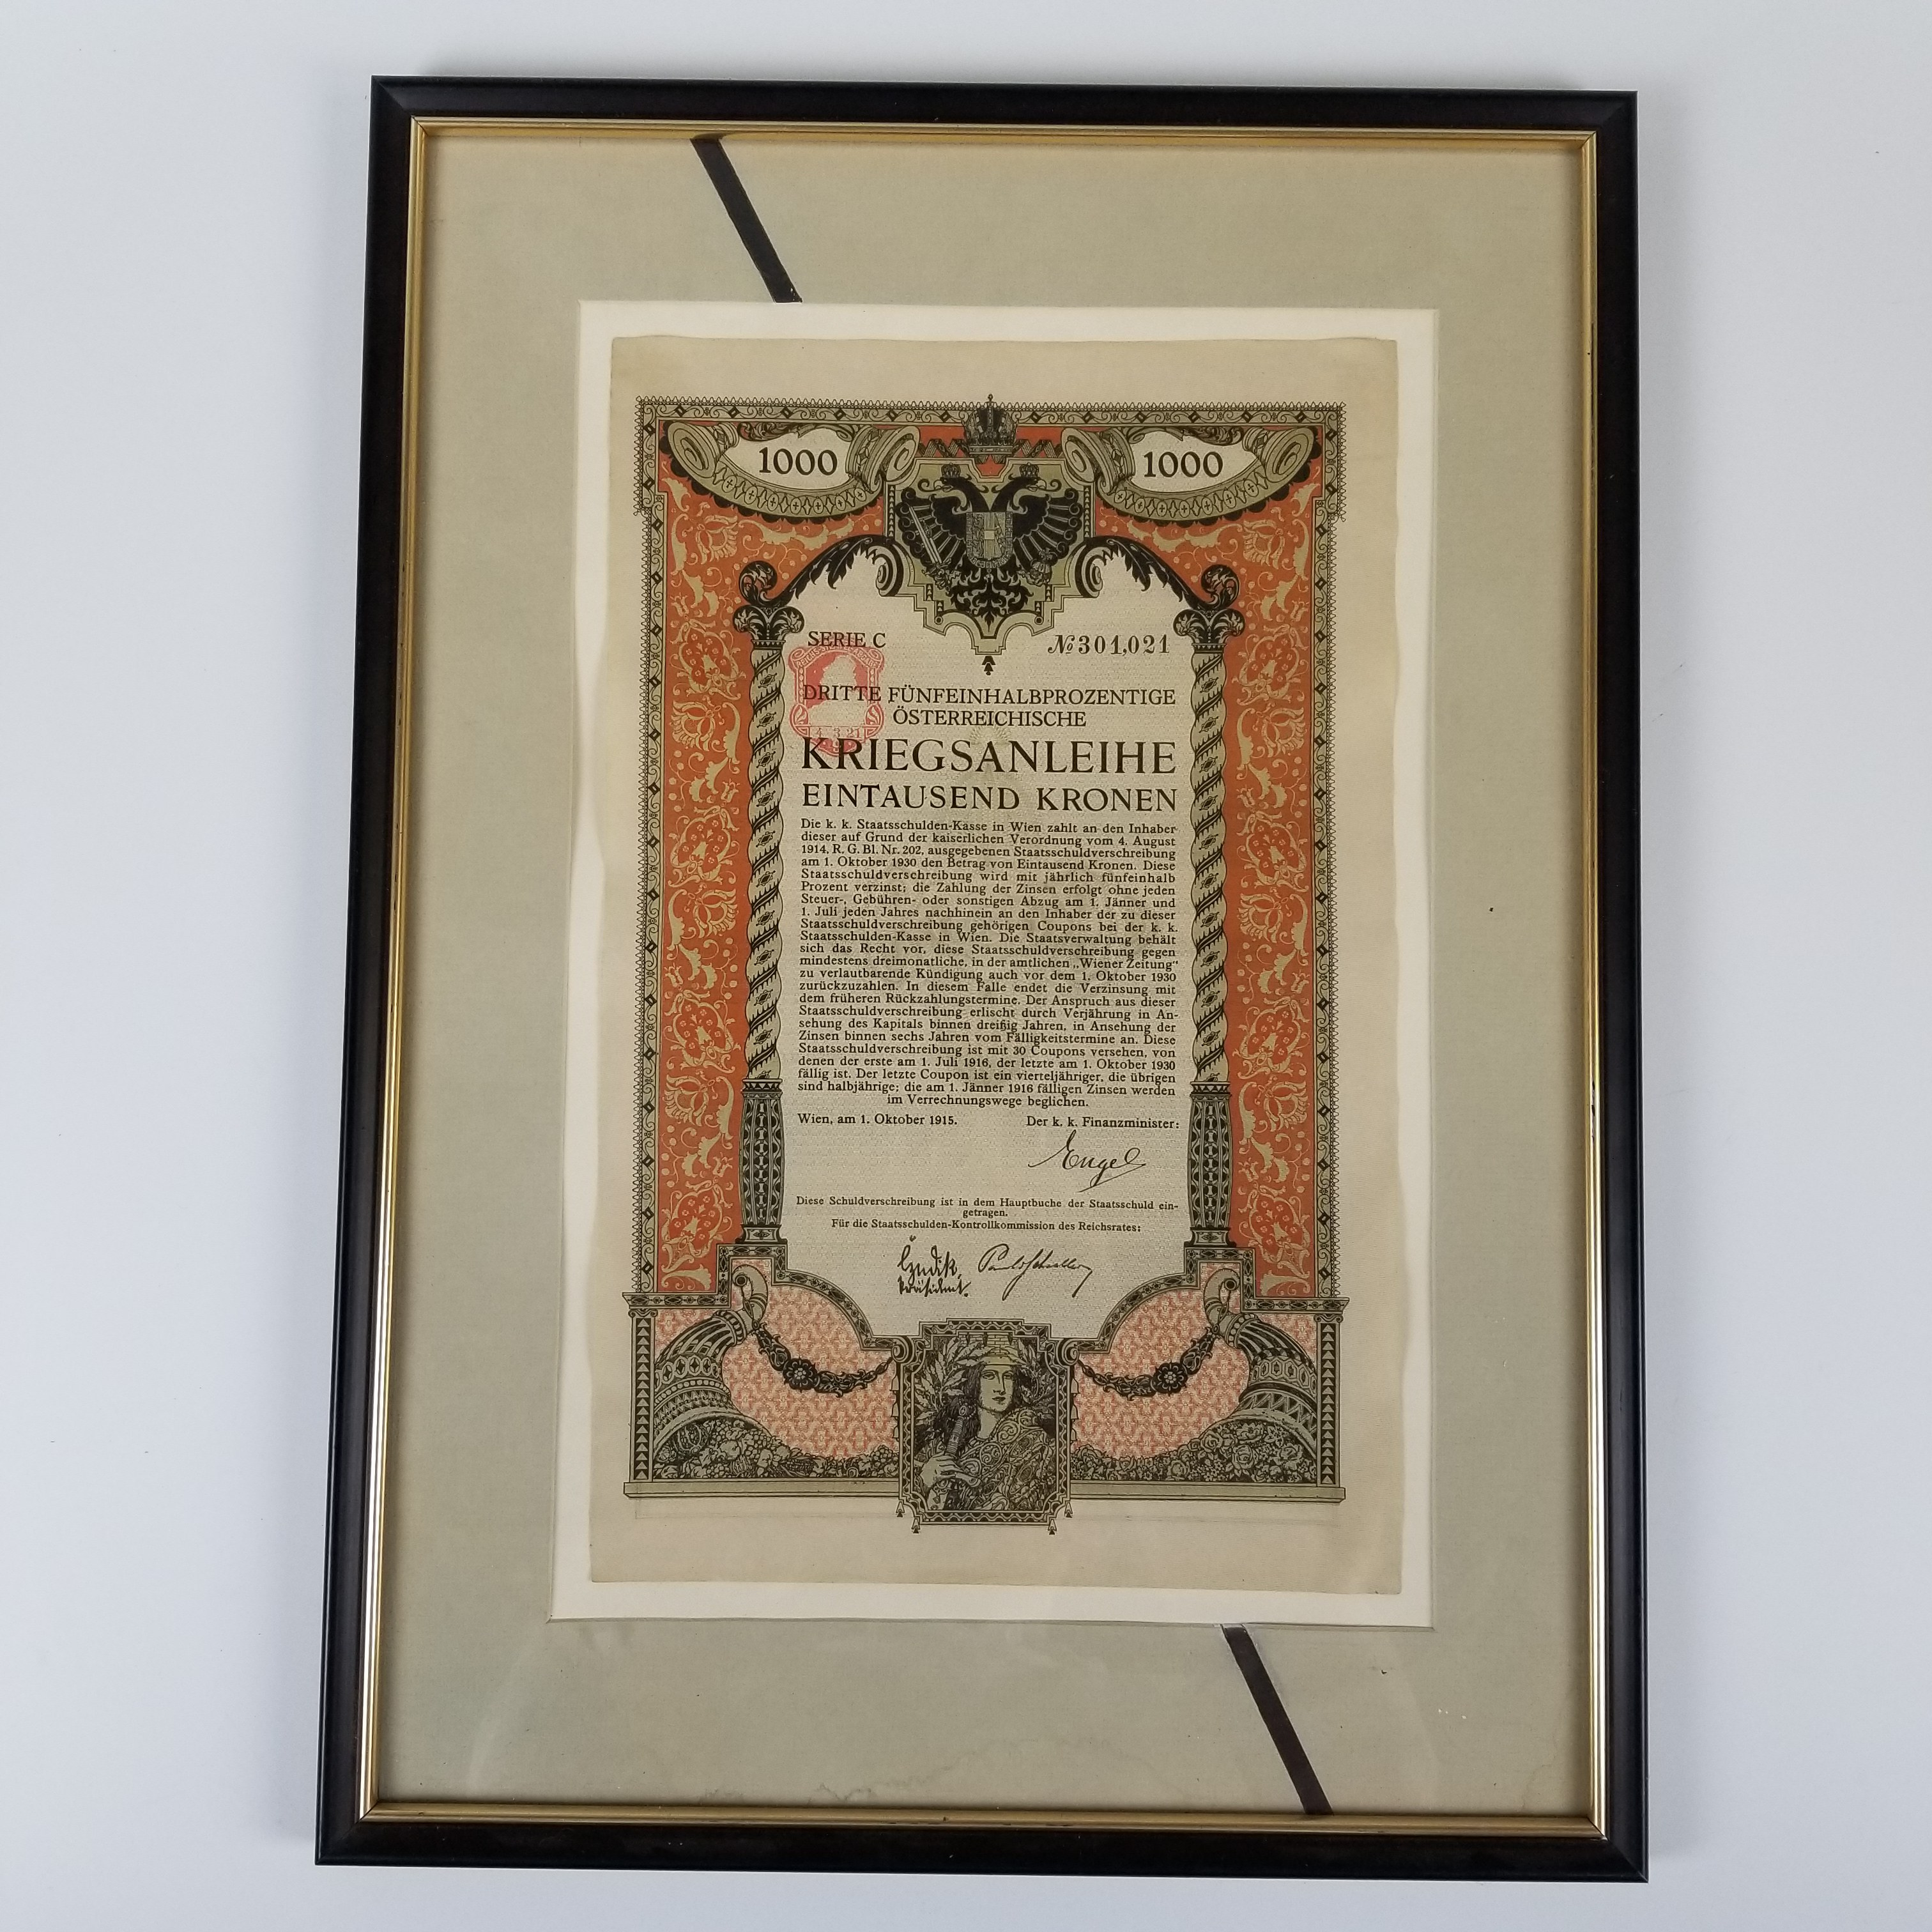 Five Framed Early 20th Century Bonds and Notes